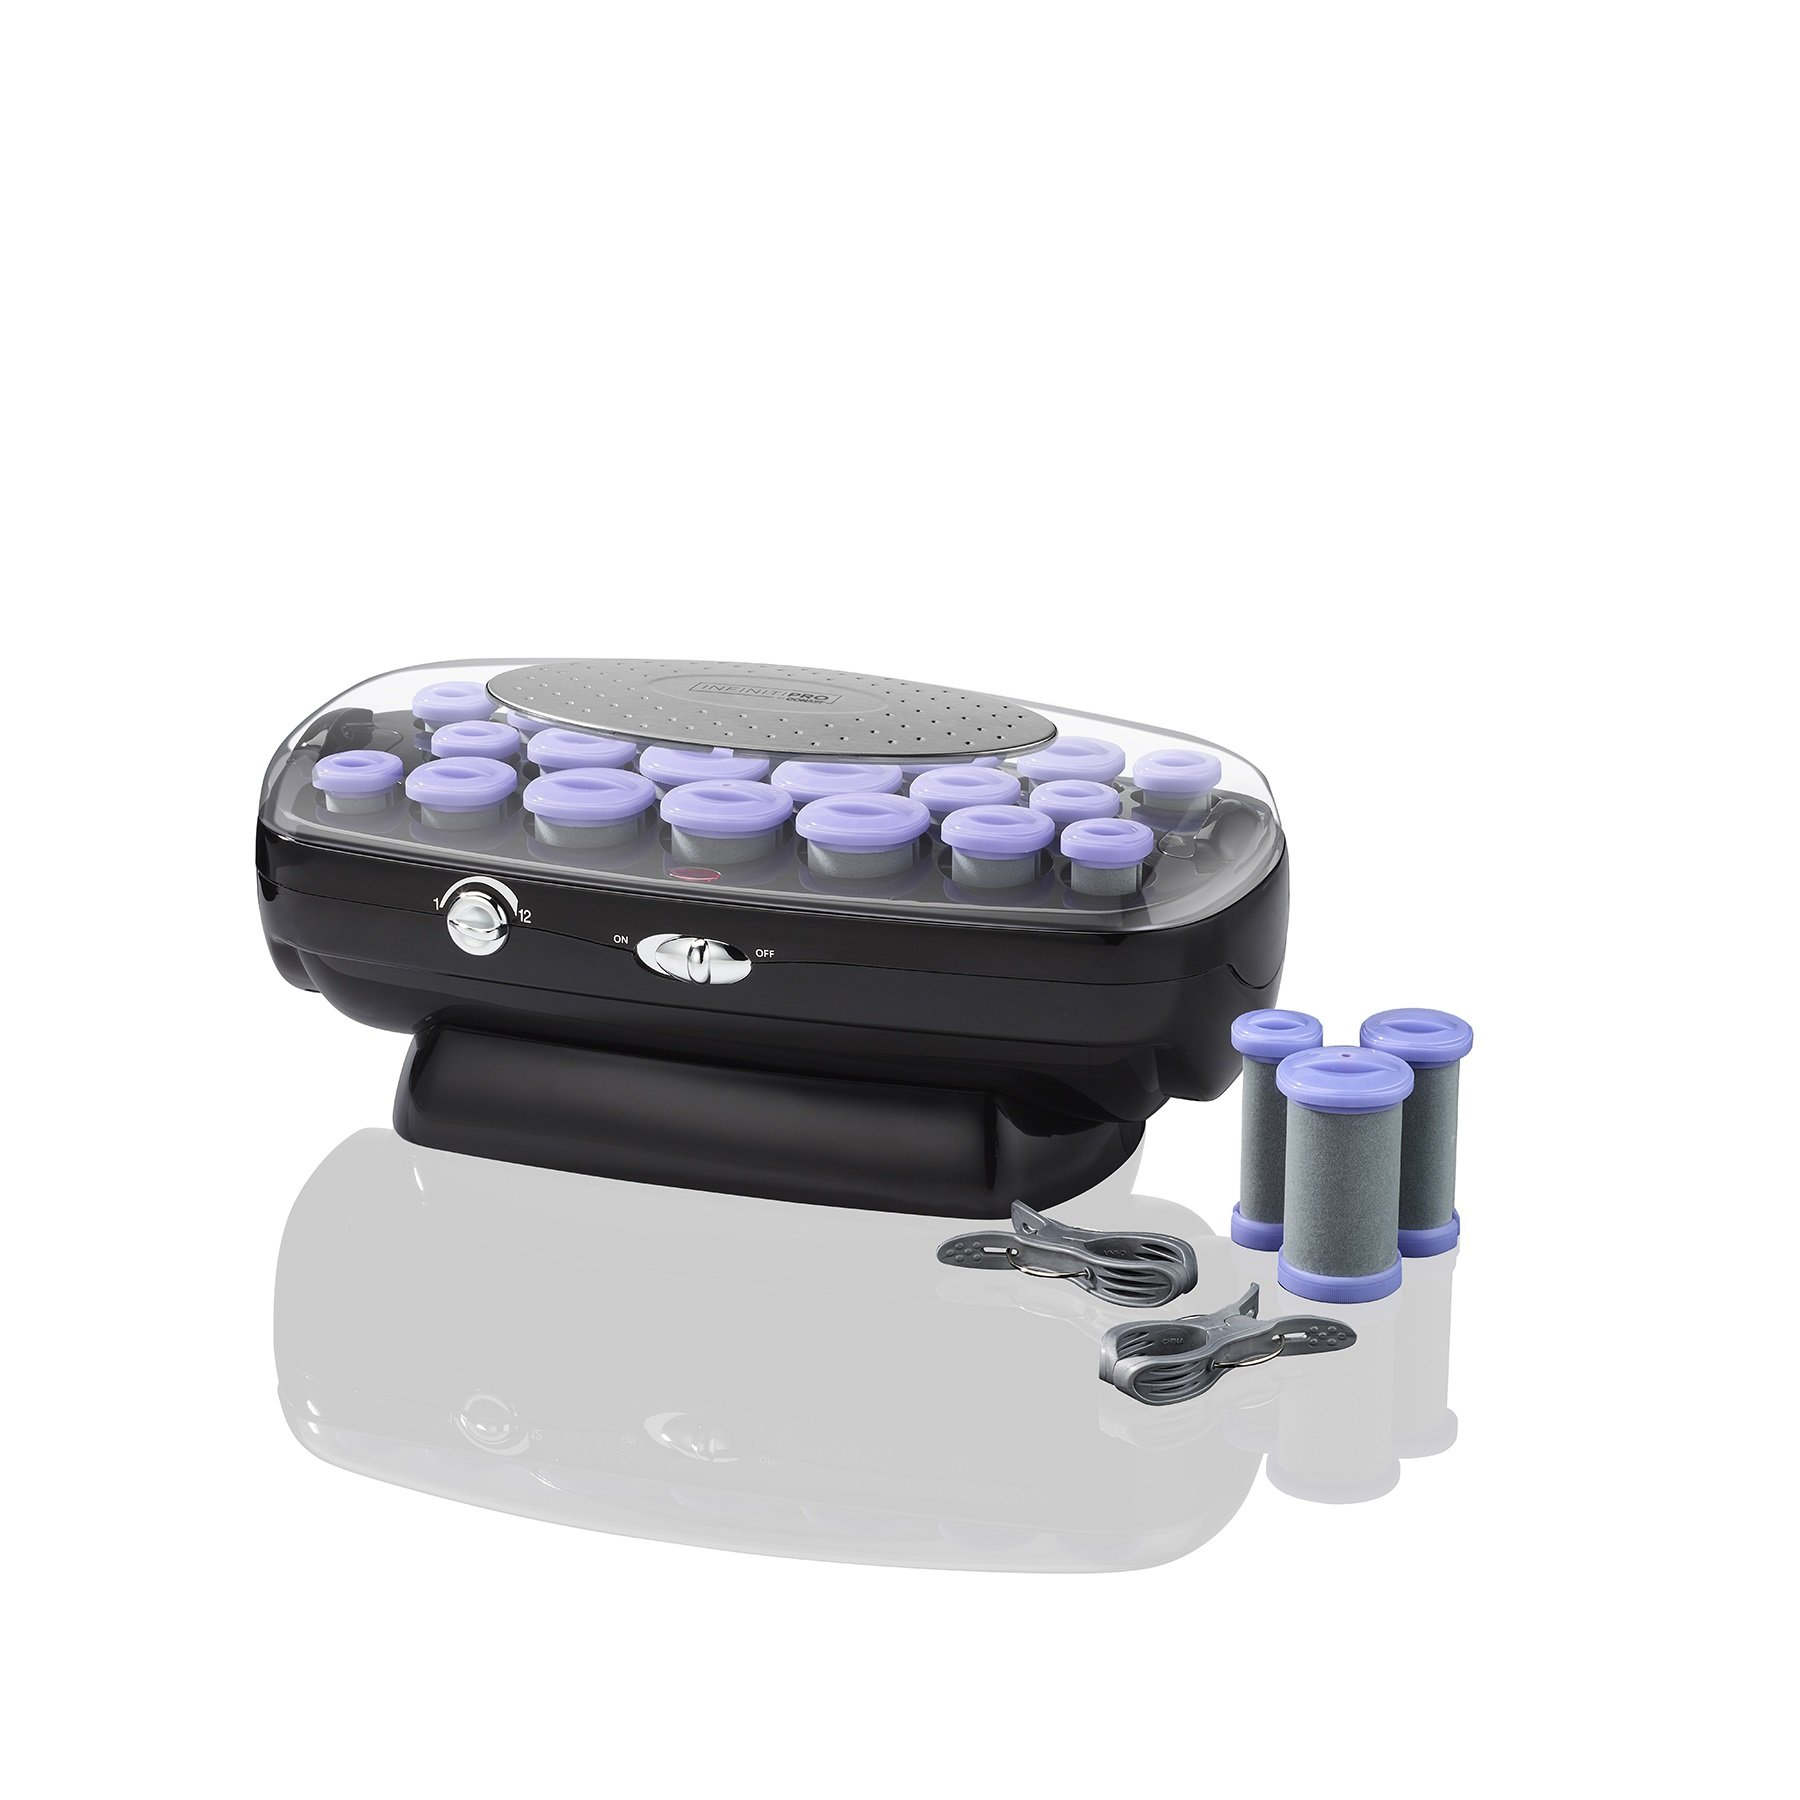 INFINITIPRO BY CONAIR Ceramic Flocked Hot Rollers w/Cord Reel; 20 Hair Rollers in 3 Sizes by Conair